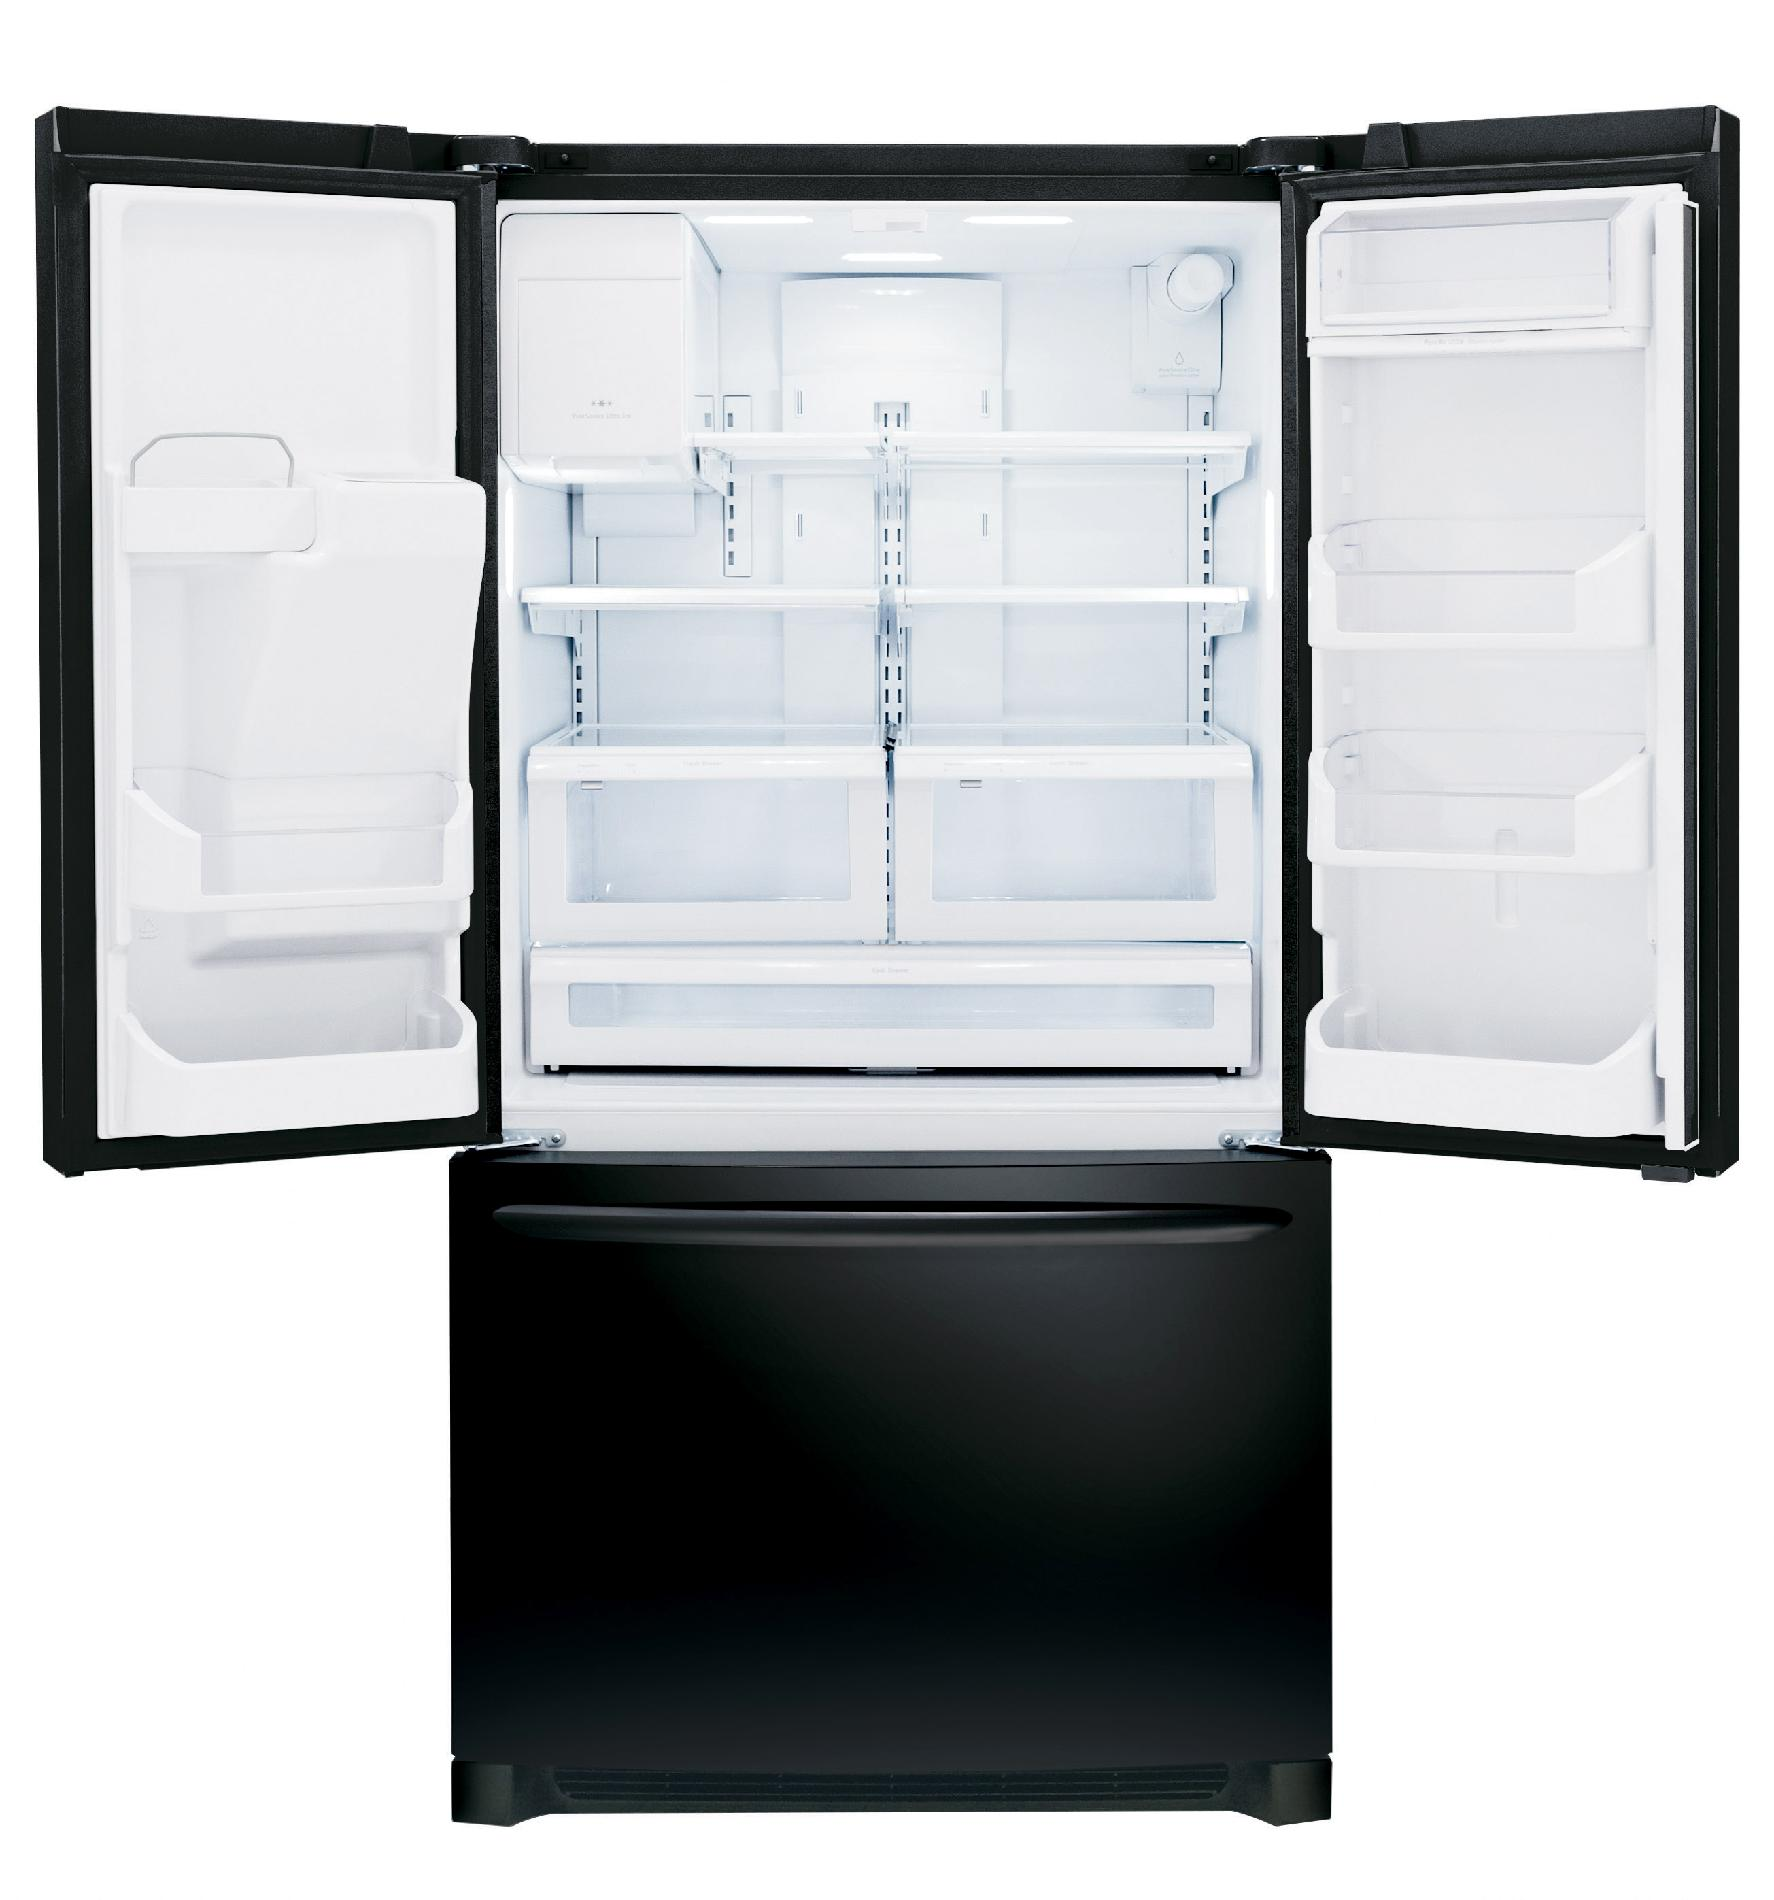 Frigidaire Gallery Gallery 27.9 cu. ft. French Door Refrigerator - Ebony Black